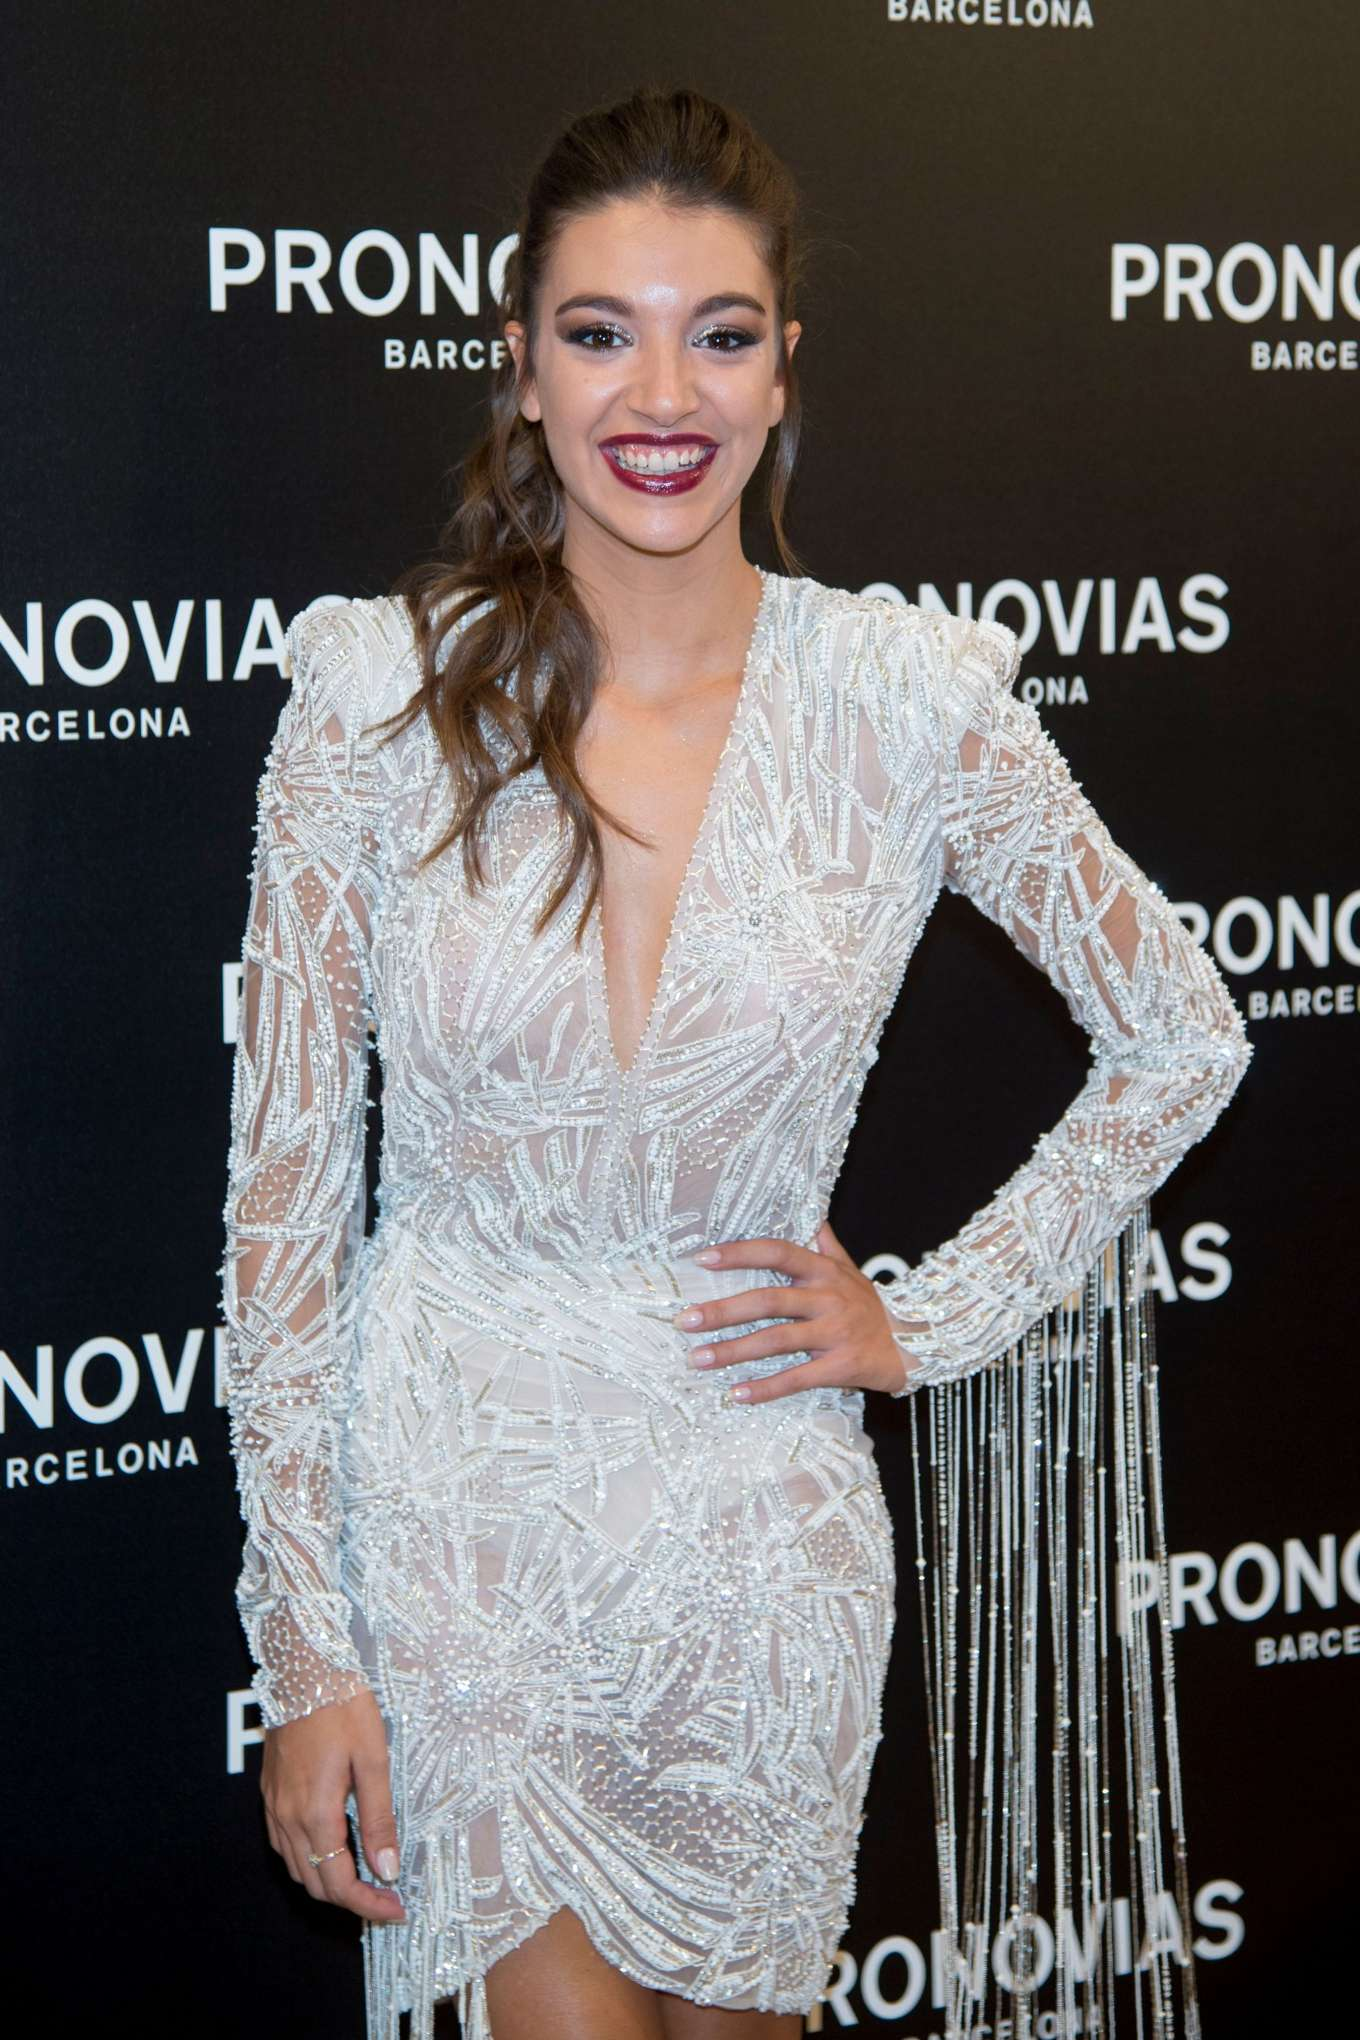 Ana Guerra - 'Pronovias' Collection Photocall in Madrid